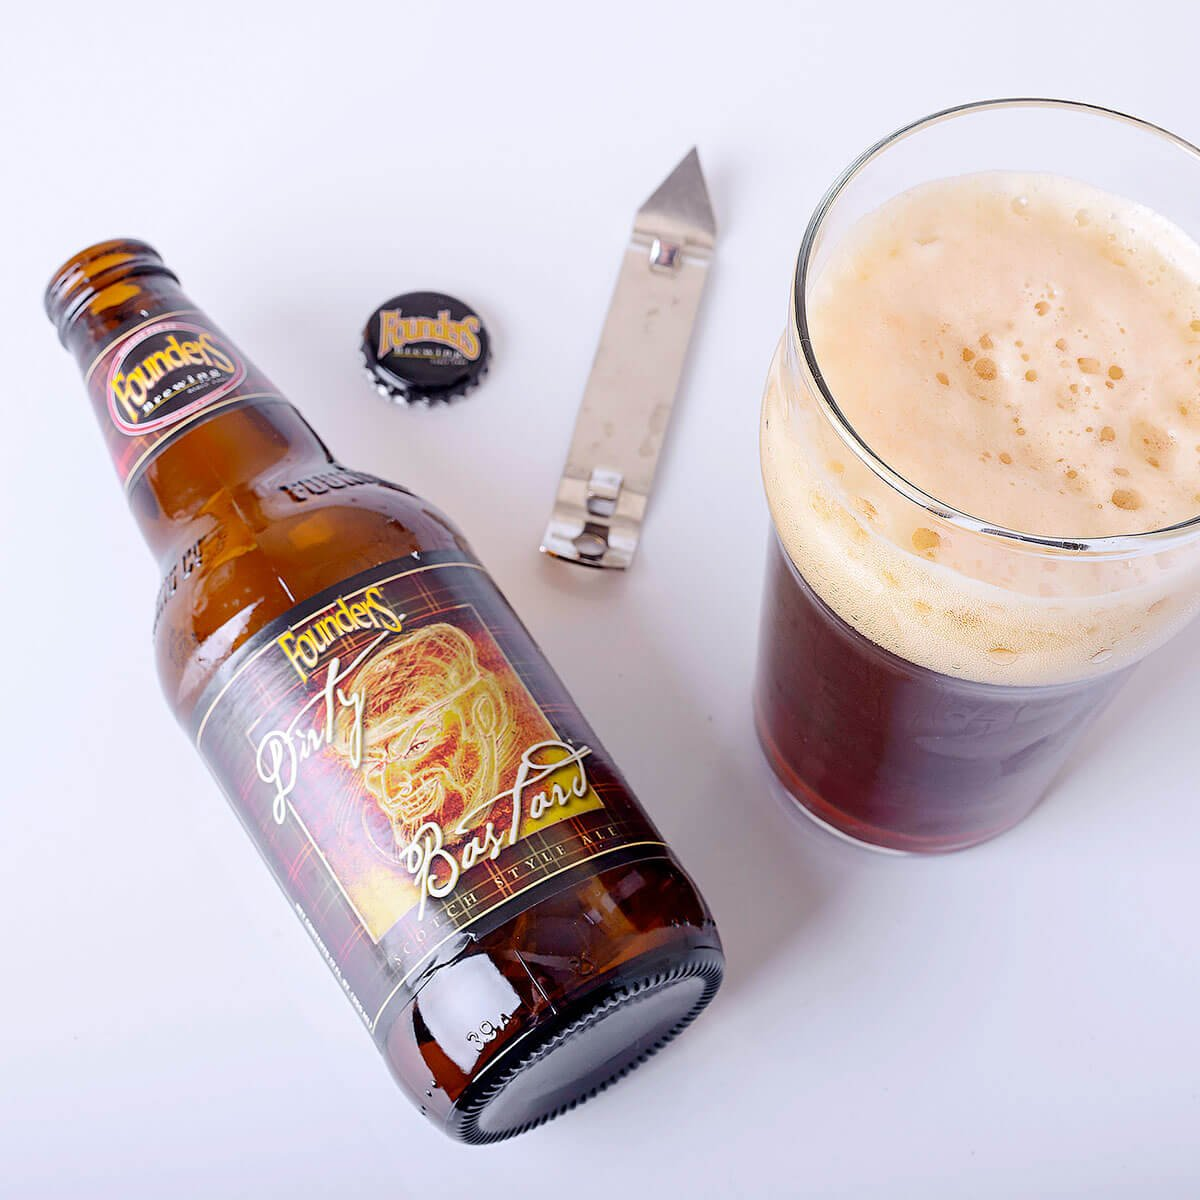 Dirty Bastard is a Scottish-style Ale by Founders Brewing Co. that's malty and sweet with a complex balance of bitterness.